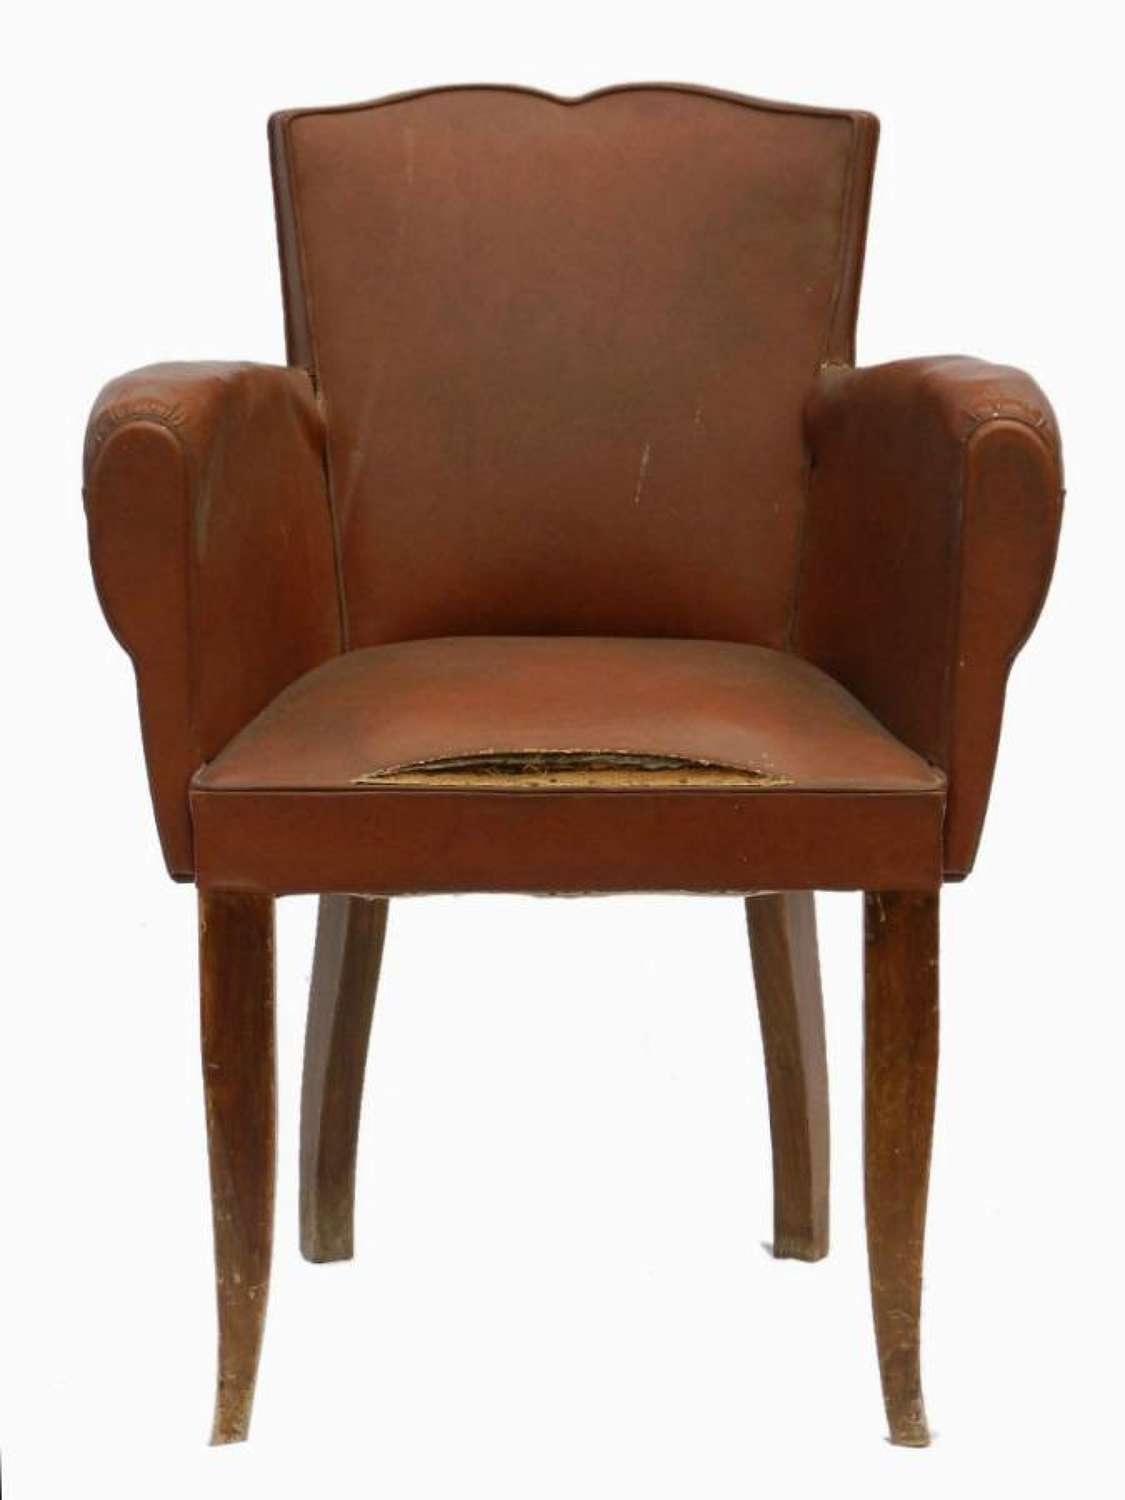 French Art Deco Armchair Moustache Back Bridge Chair to recover Barn Fresh